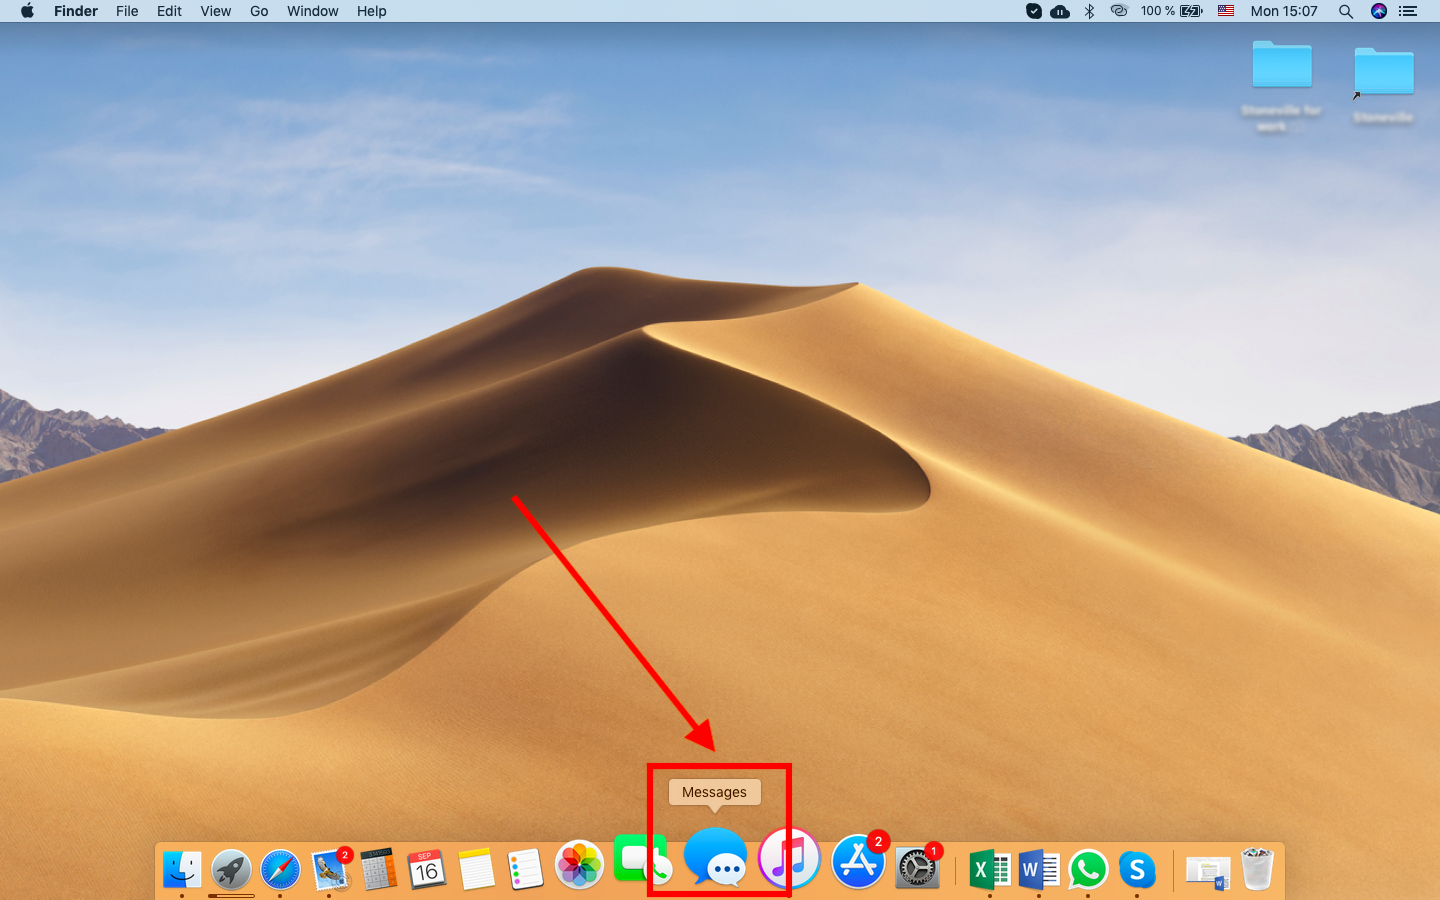 Launch the Messages application on your Mac